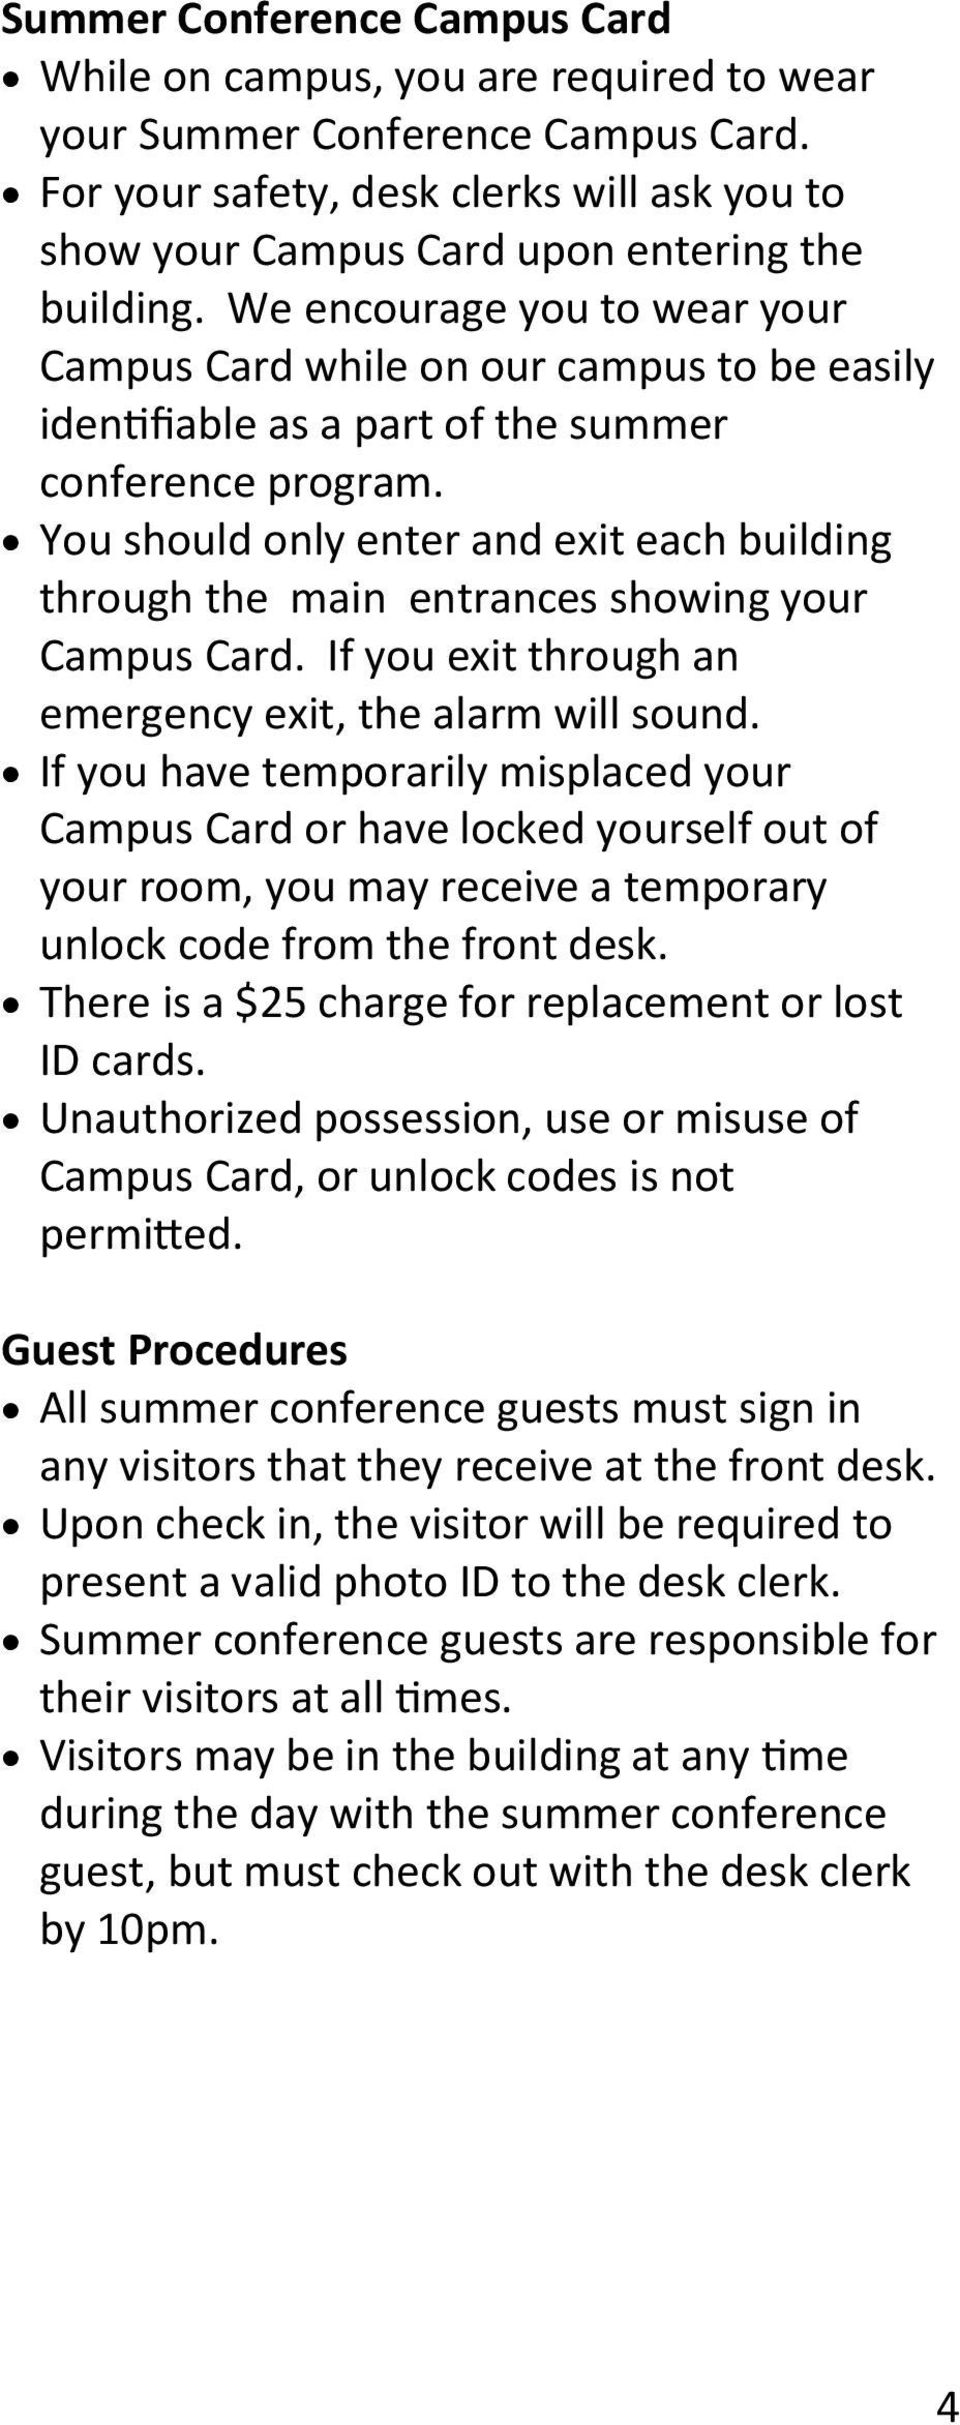 We encourage you to wear your Campus Card while on our campus to be easily identifiable as a part of the summer conference program.